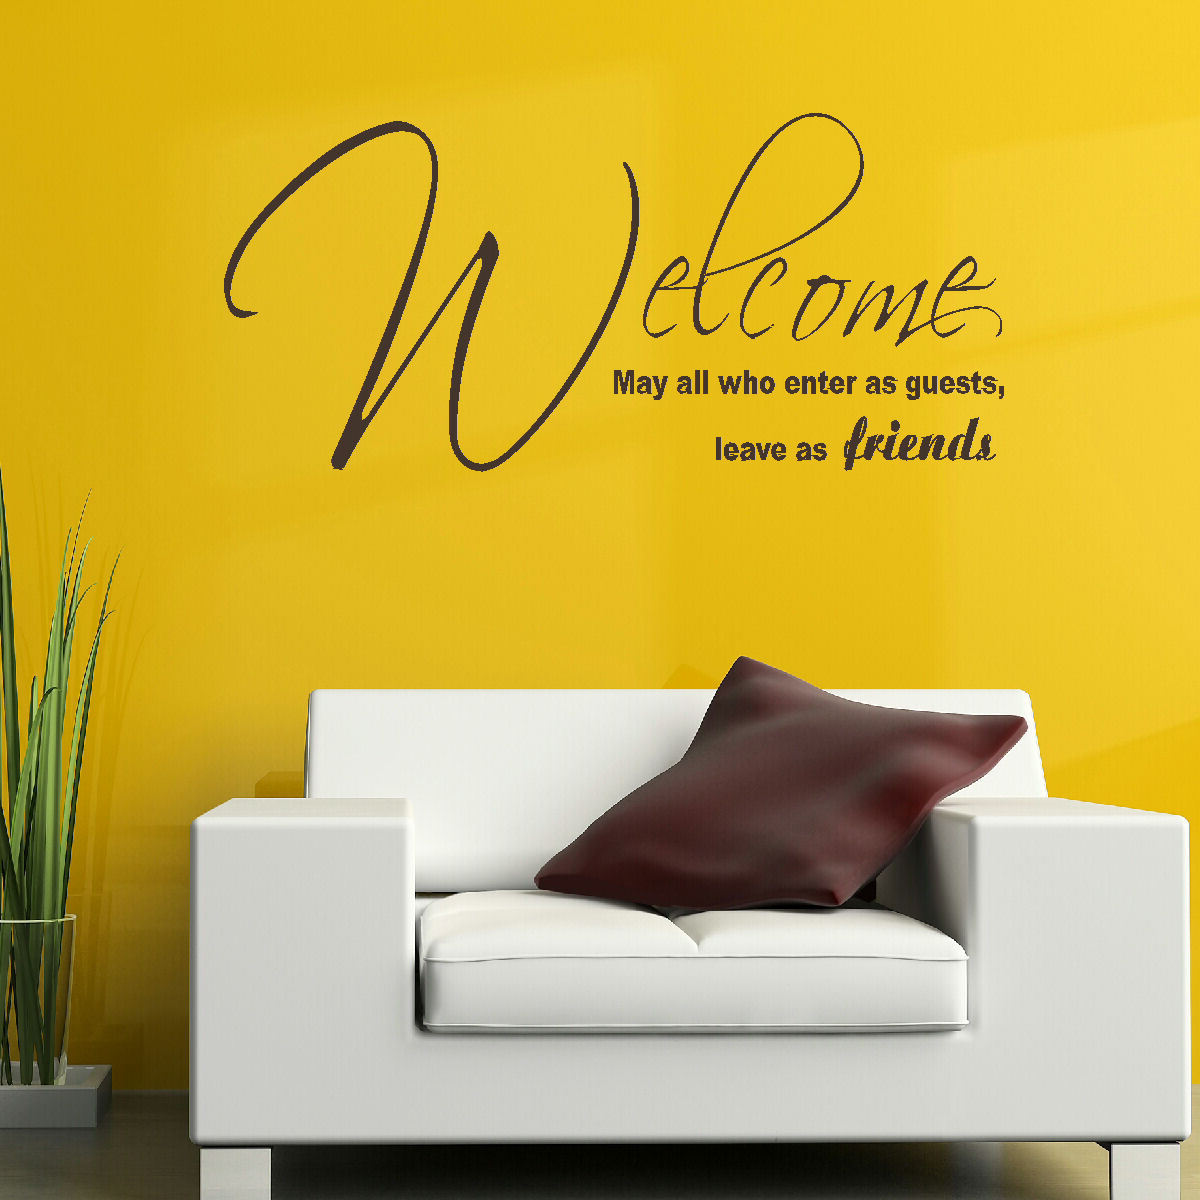 LARGE-QUOTE-WELCOME-ENTER-AS-FRIENDS-LEAVE-AS-FAMILY-WALL-ART ...